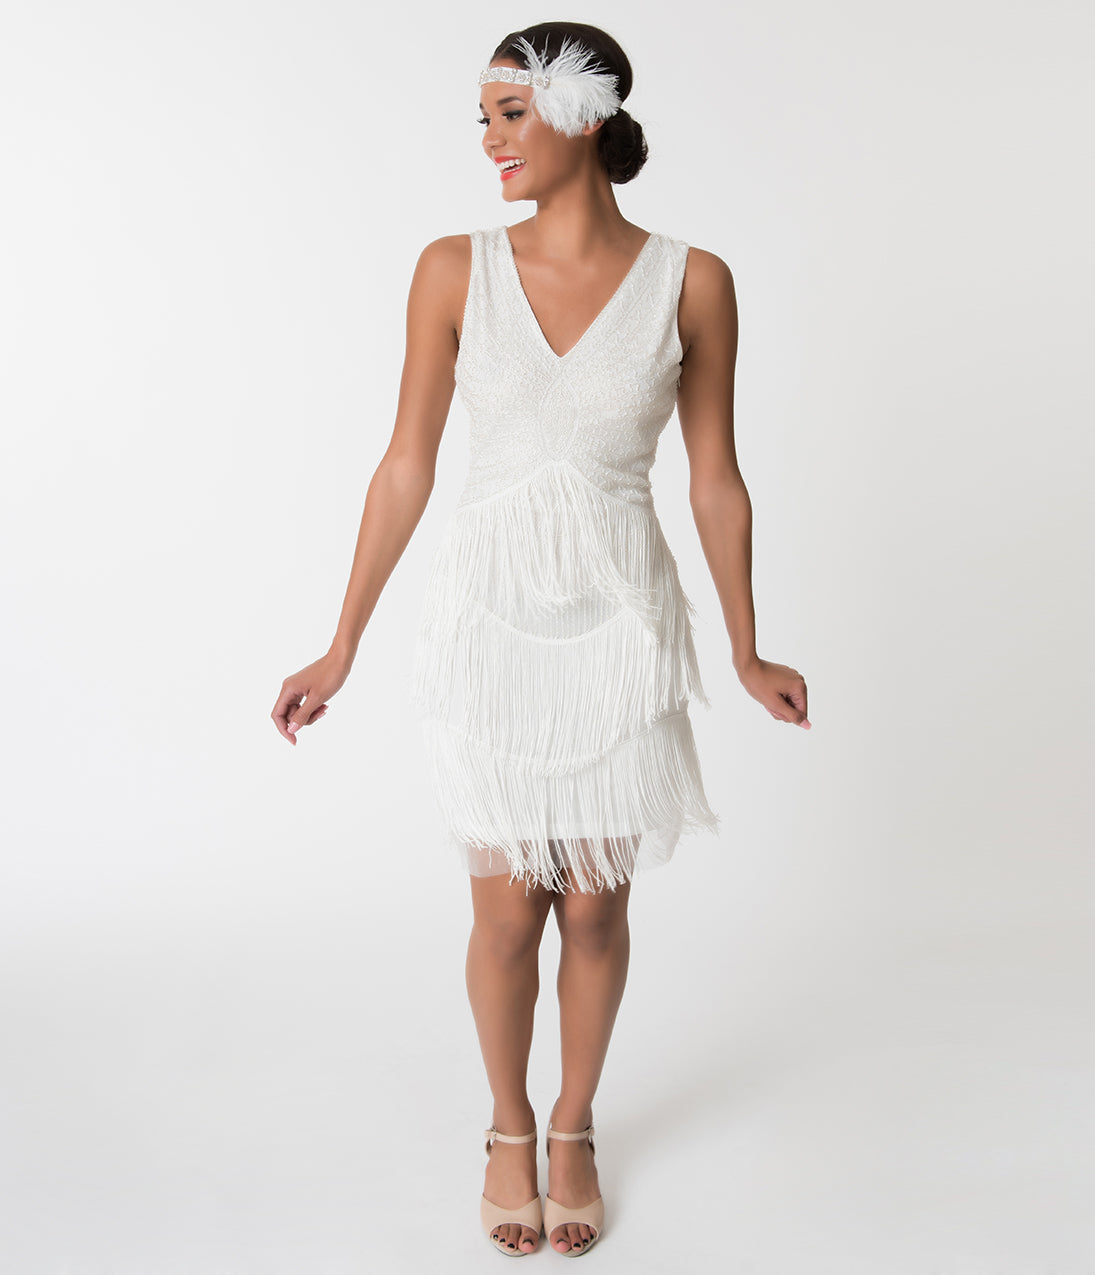 1920s Wedding Dresses- Art Deco Wedding Dress, Gatsby Wedding Dress Unique Vintage 1920S White Beaded Renee Fringe Cocktail Dress $41.00 AT vintagedancer.com